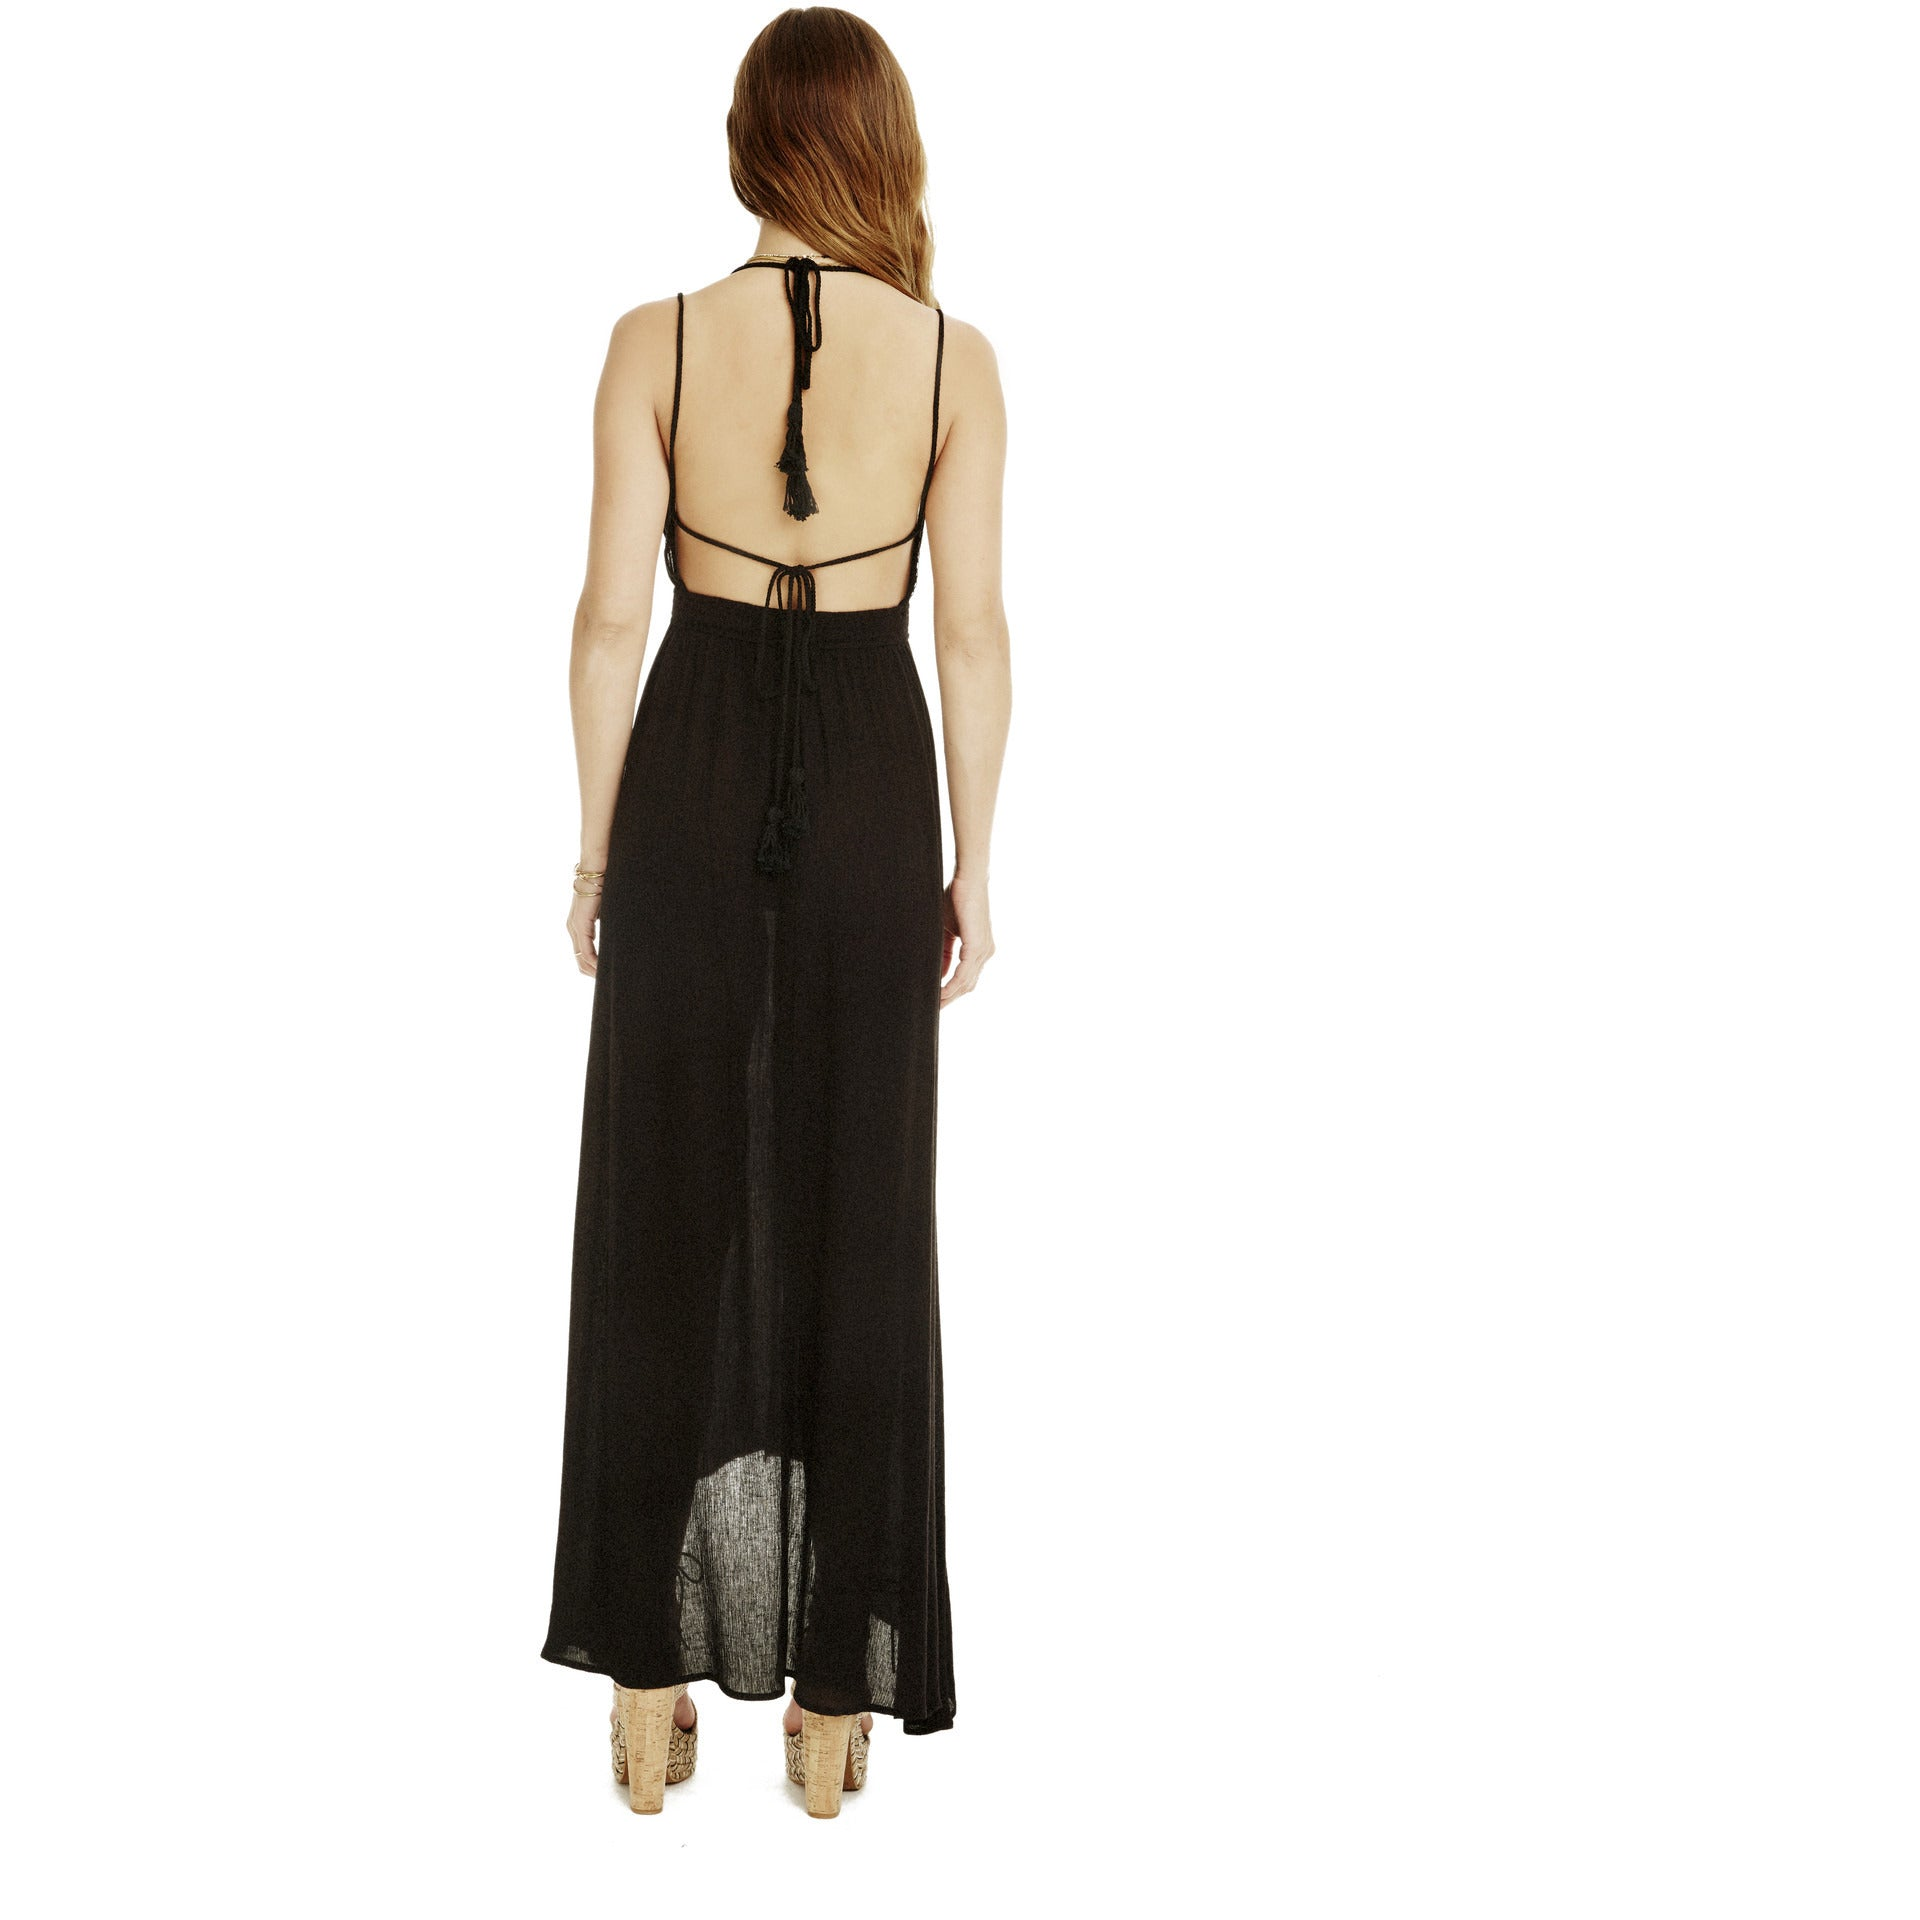 Belen Maxi Dress in Black